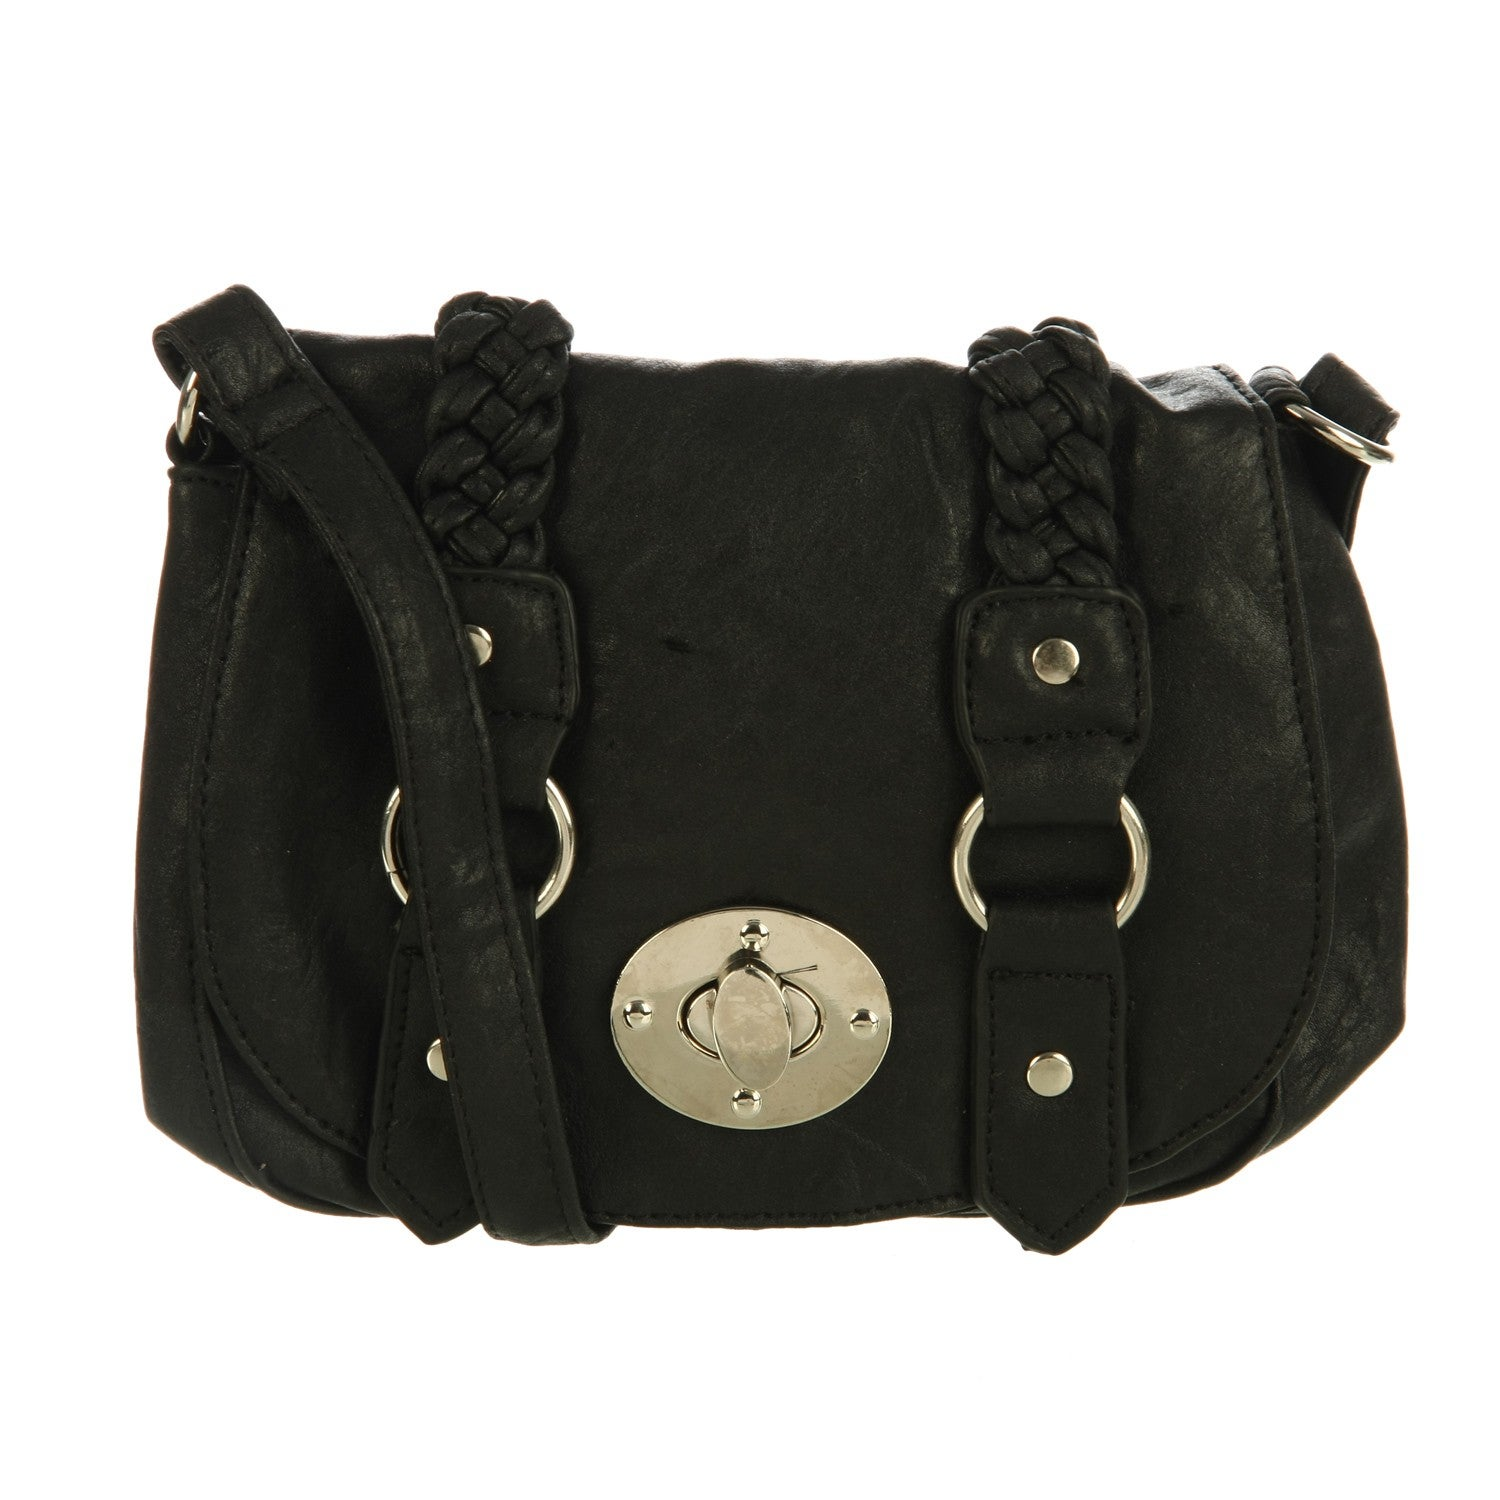 Del Cesca Cindy Crossbody Saddle Bag Free Shipping On Orders Over 45 6039070